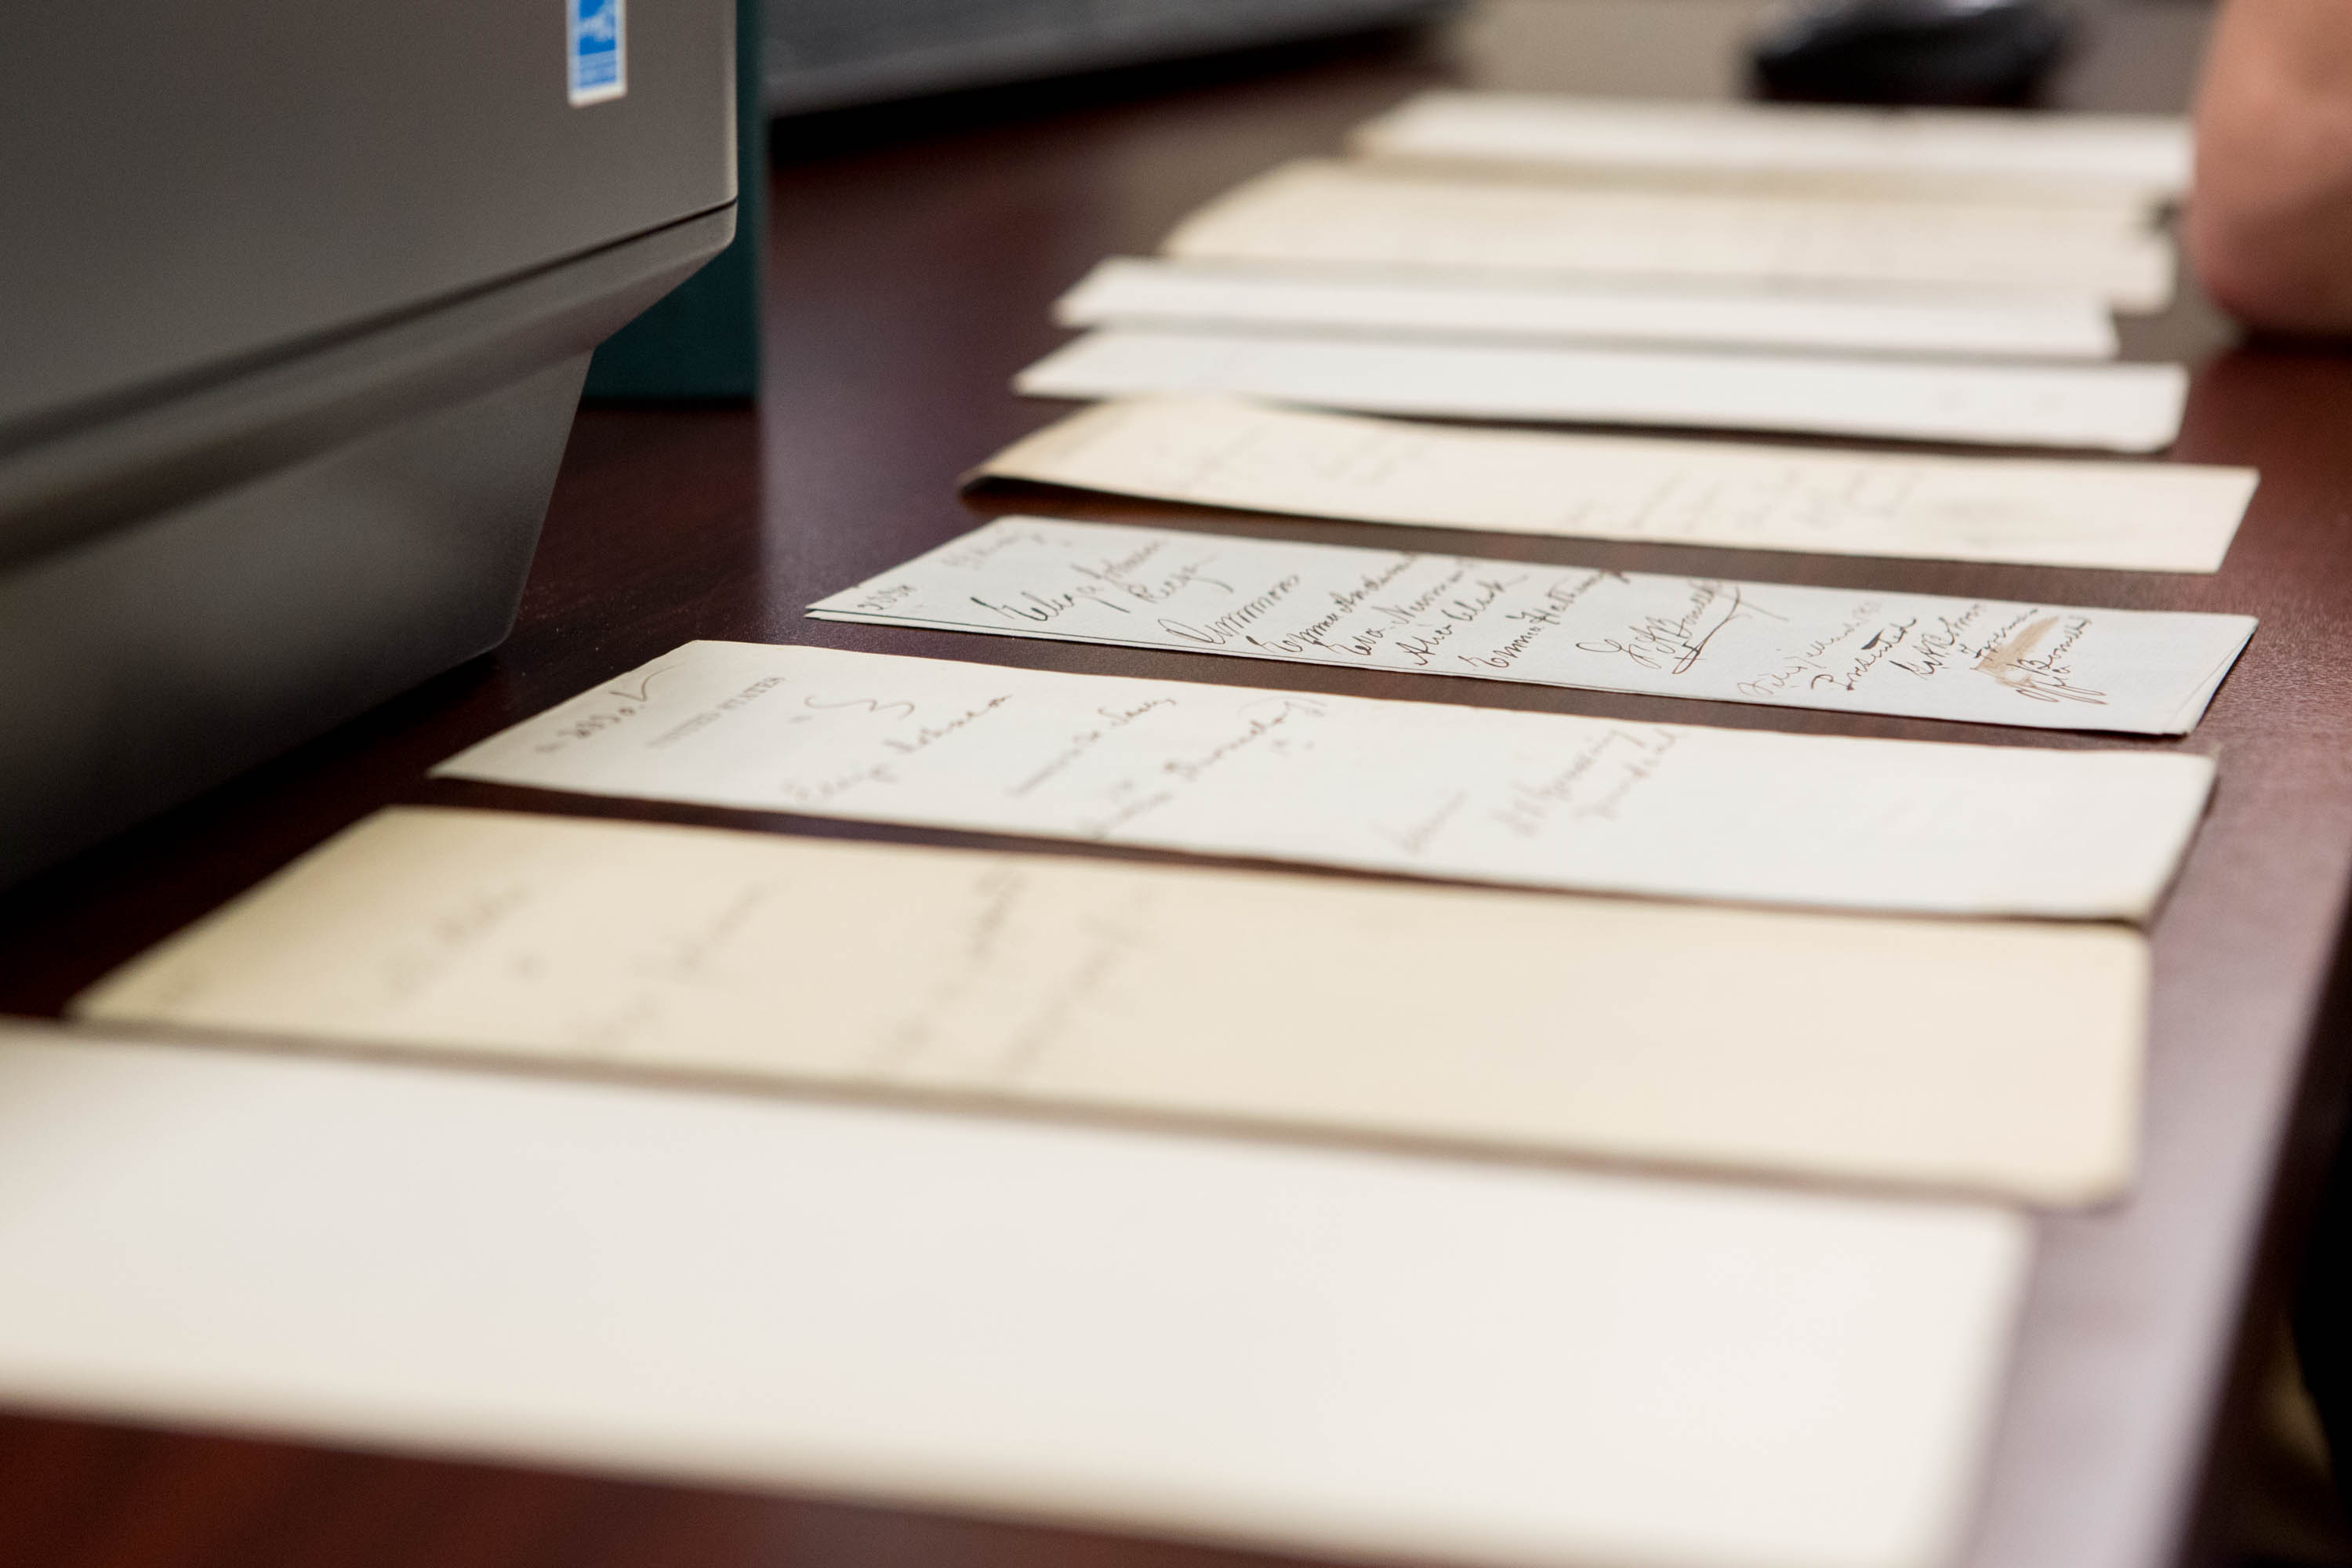 Documents scanned by a group of high school students who volunteered in the digitization lab at the National Archives in Washington, DC, on July 20, 2016.